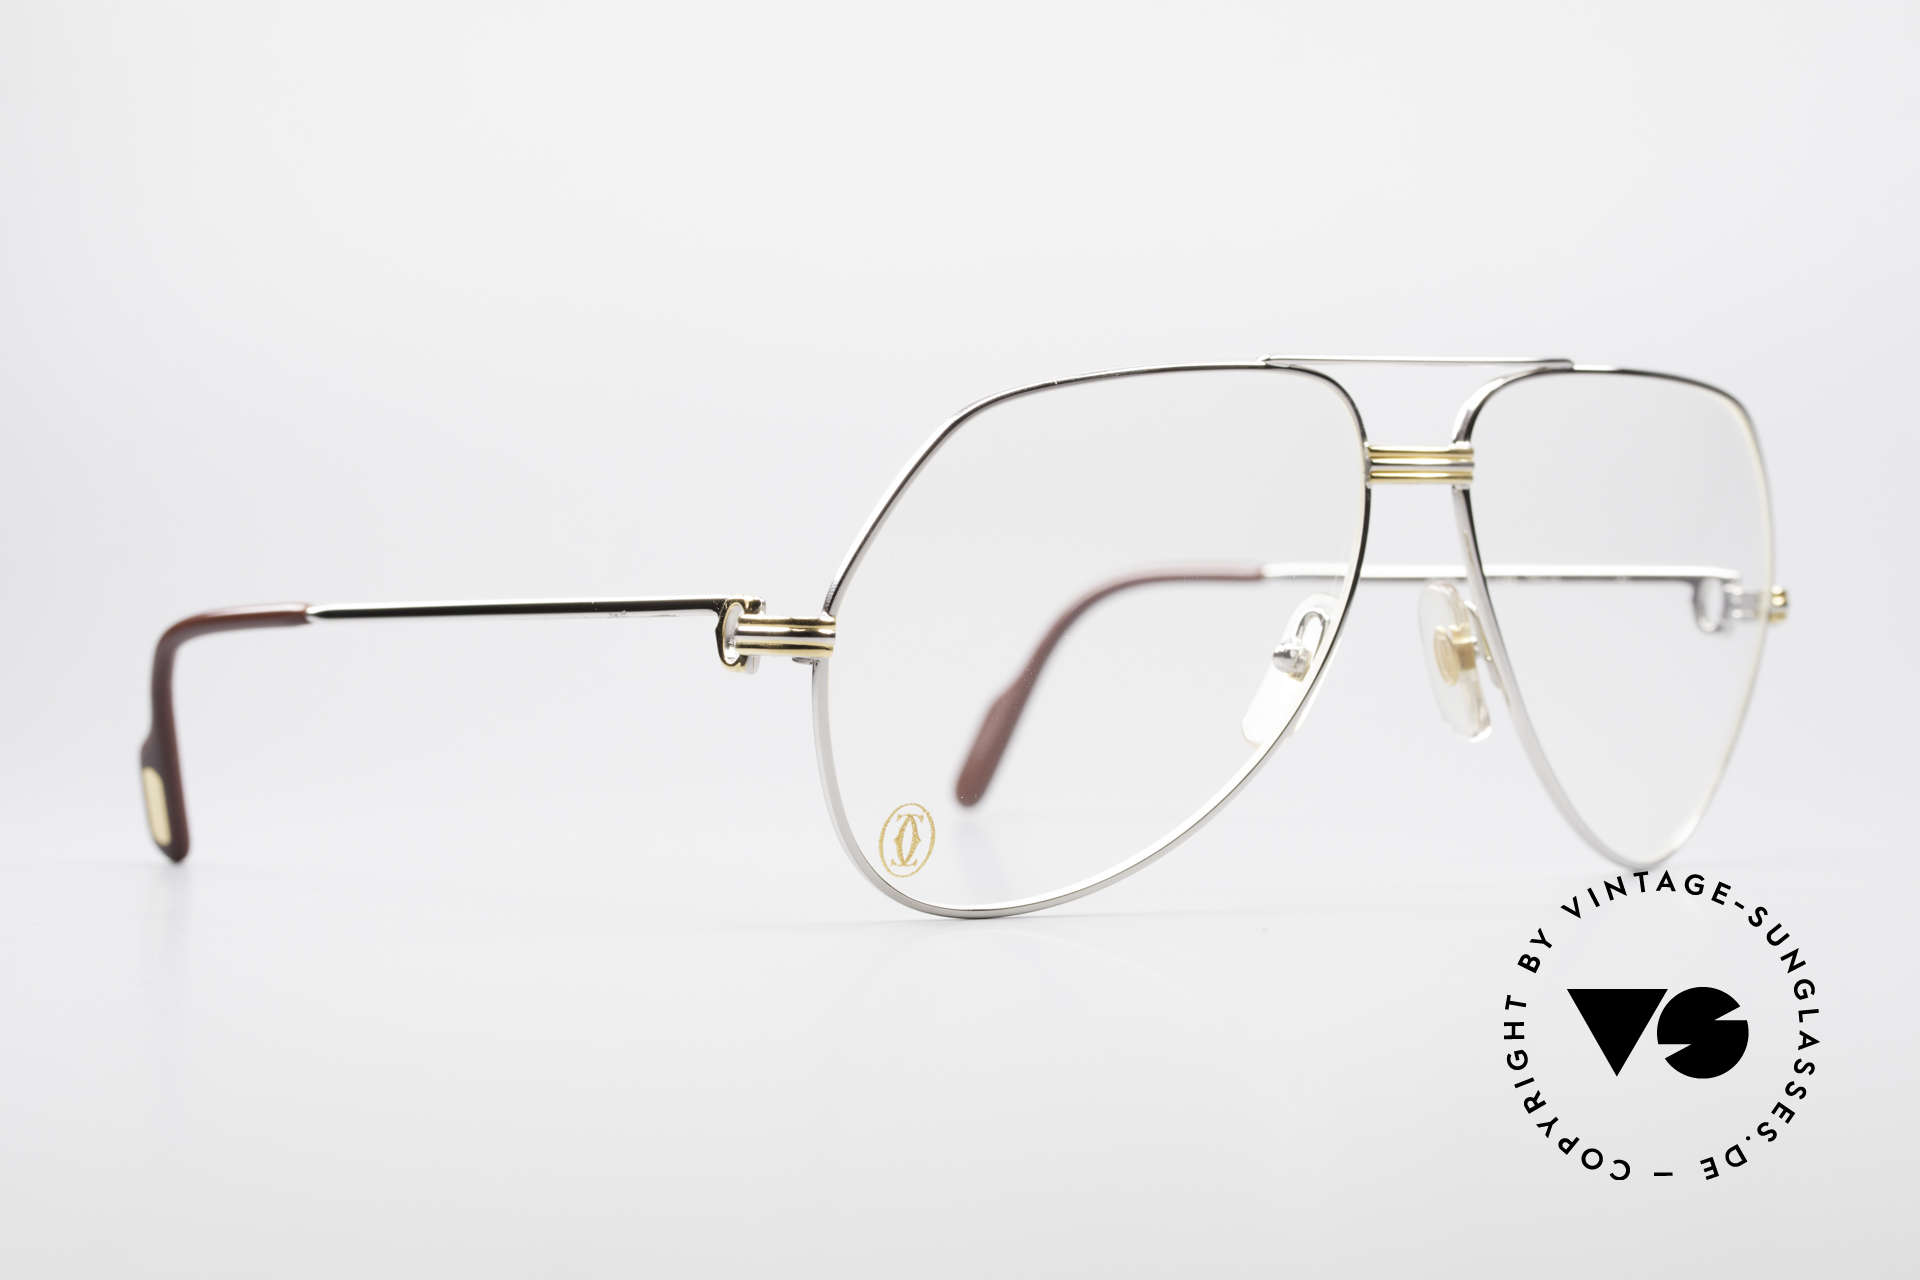 Cartier Vendome LC - L Platinum Finish Frame Luxury, this pair (with L.Cartier decor) in LARGE size 62-14,140, Made for Men